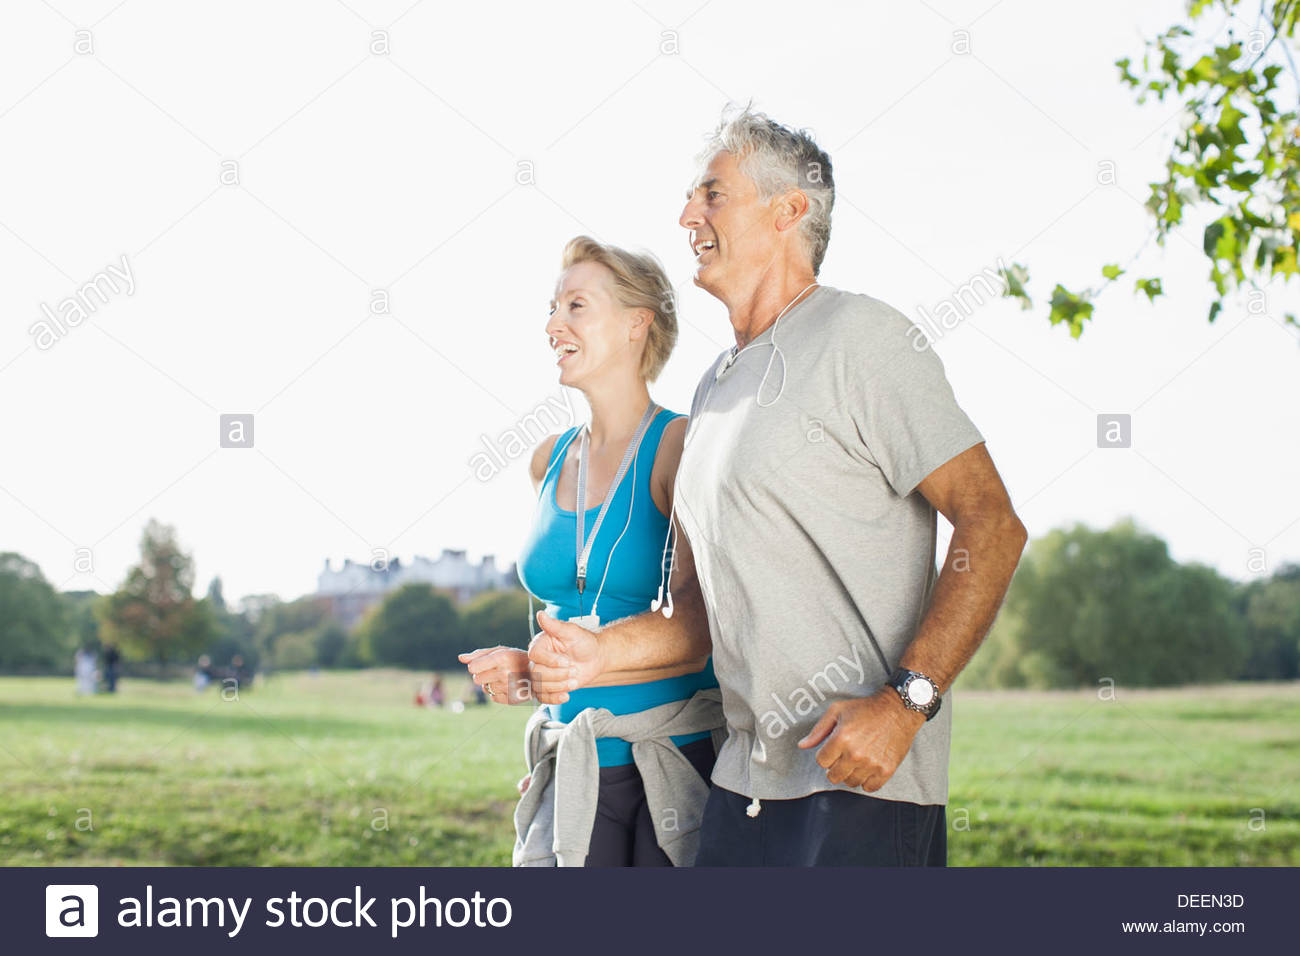 Couple jogging together outdoors Photo Stock